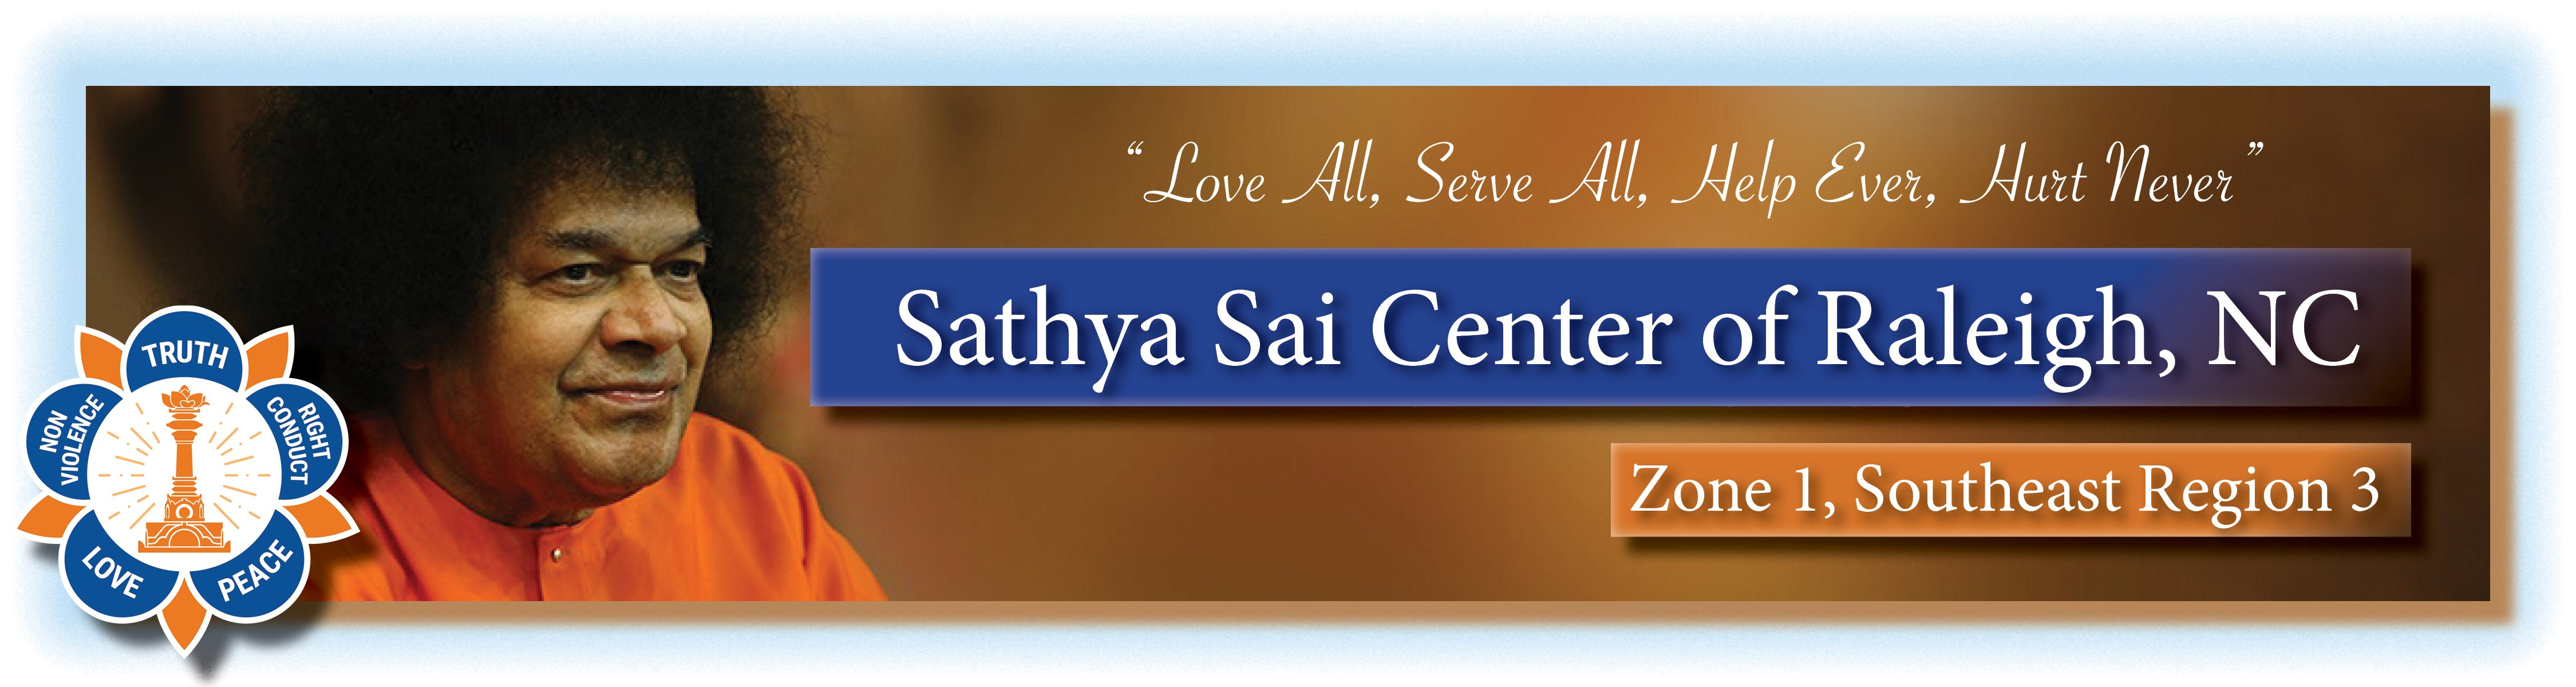 Sathya Sai Center of Raleigh